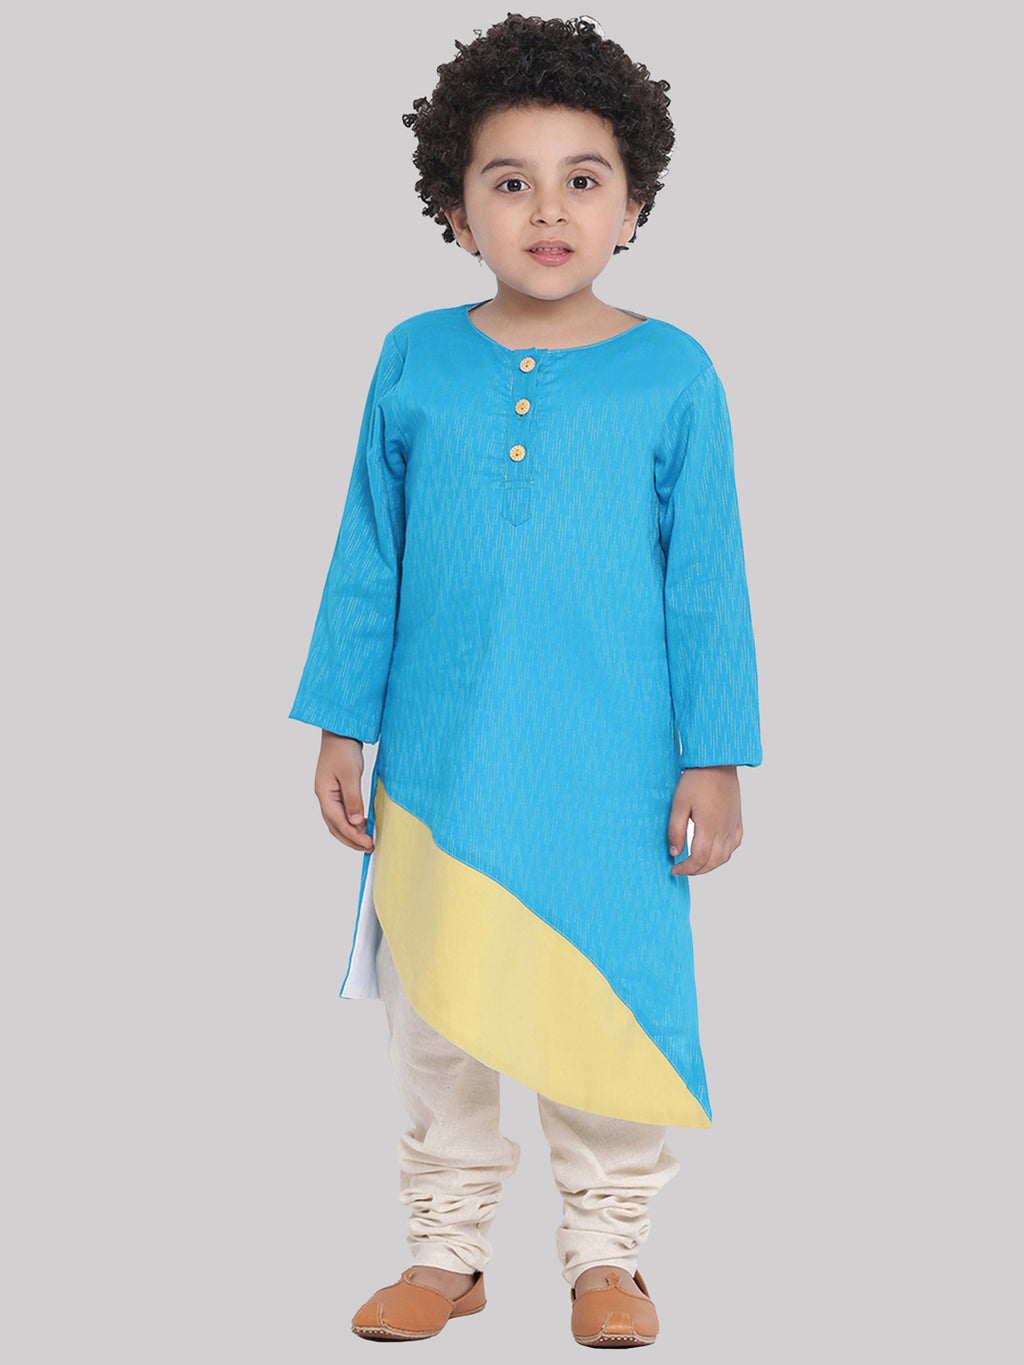 Kushal kurta pajama set for boys